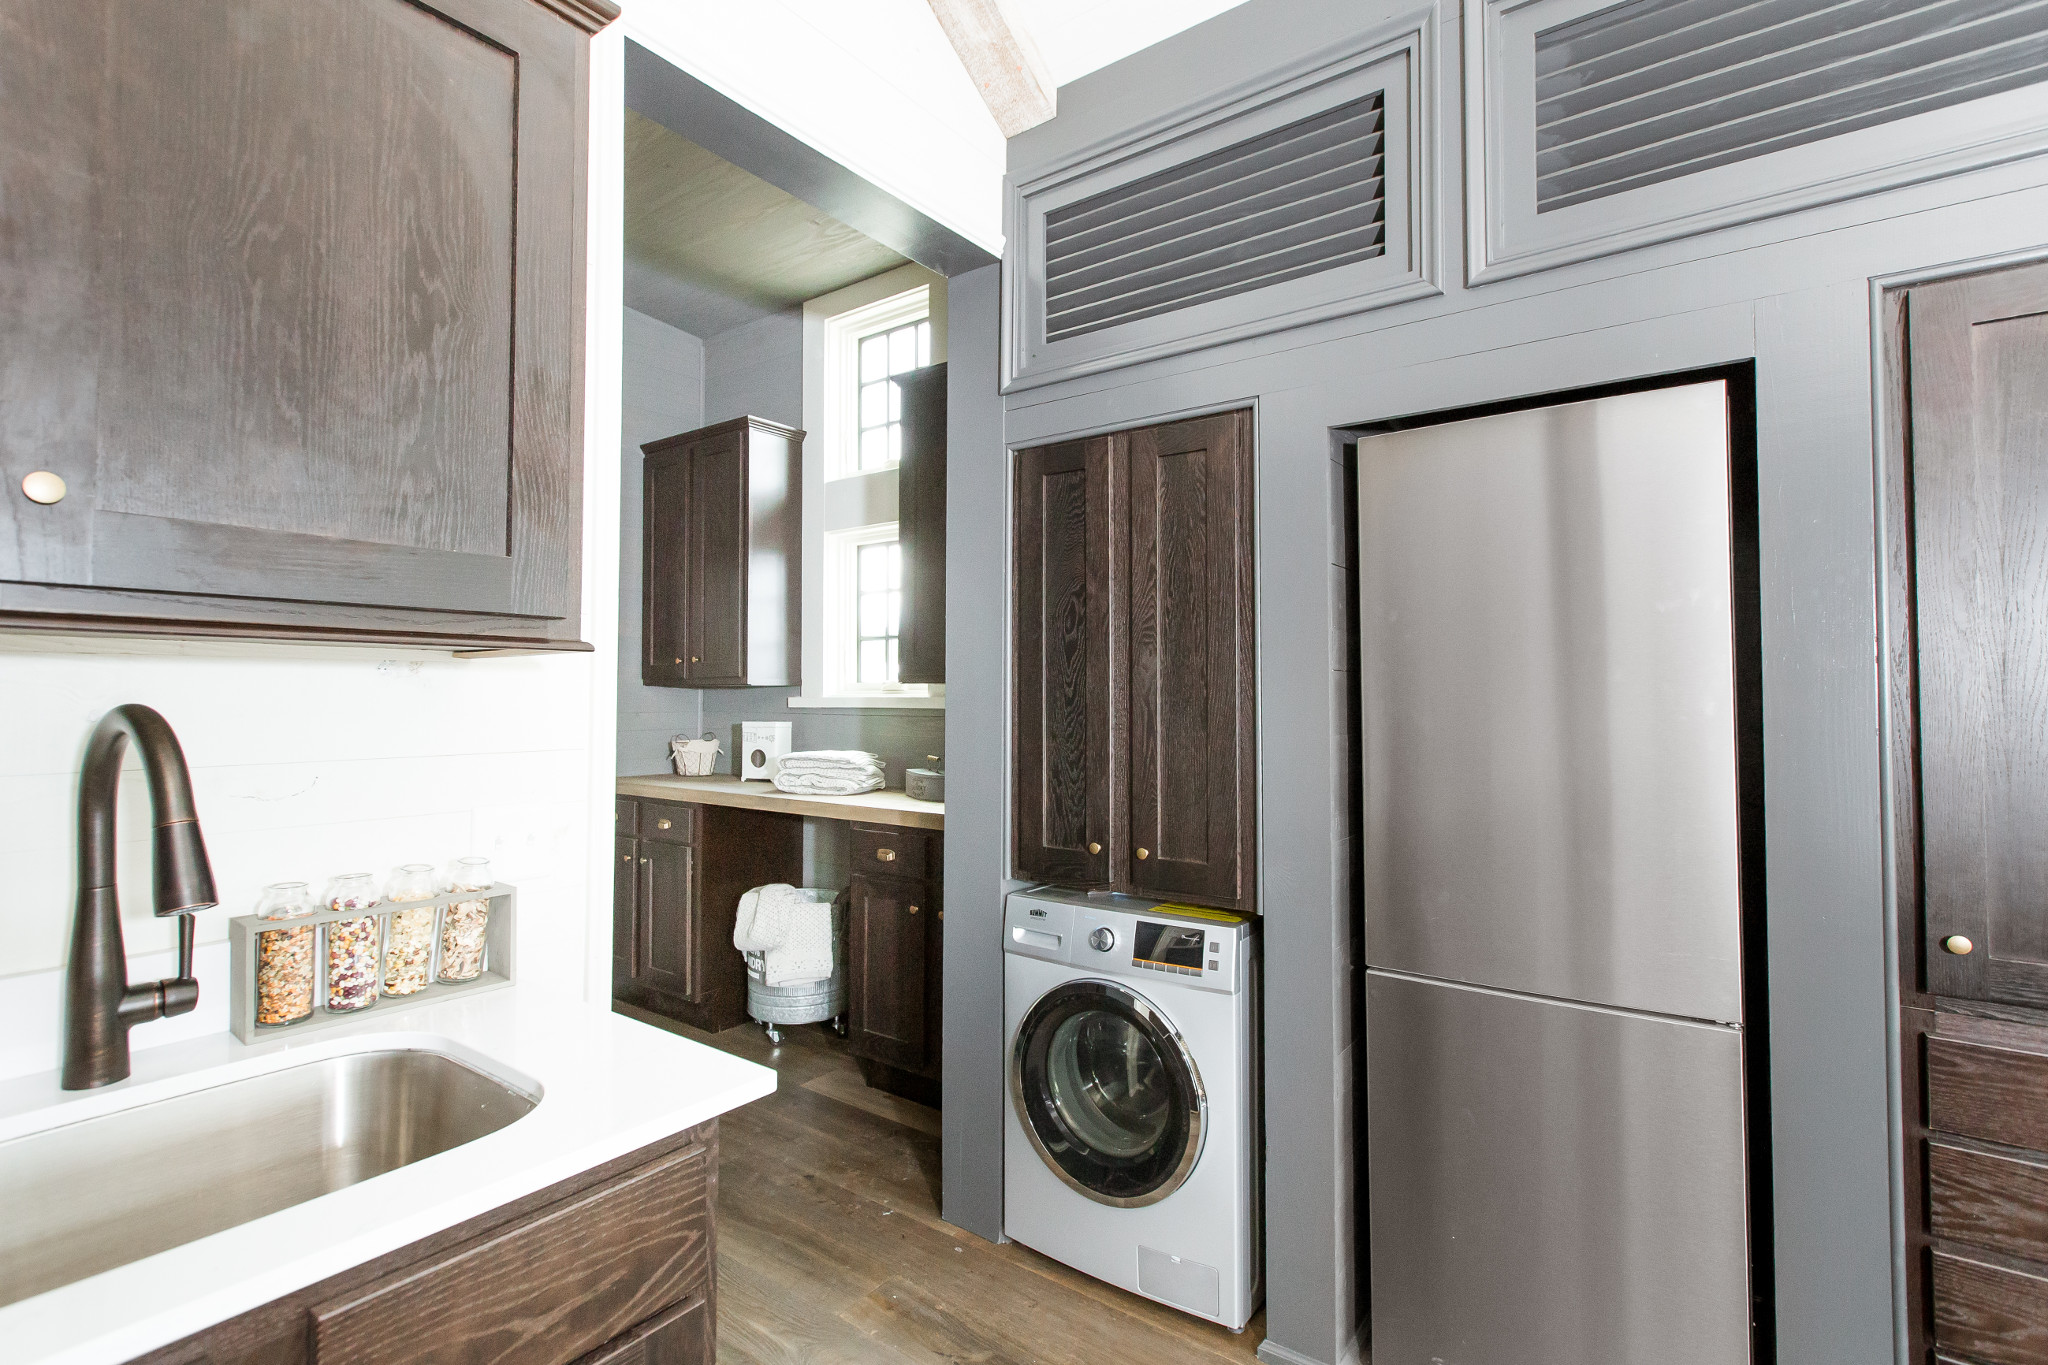 Tiny House Appliances >> Clayton Introduces Tiny Home at Berkshire Hathaway Shareholders Meeting